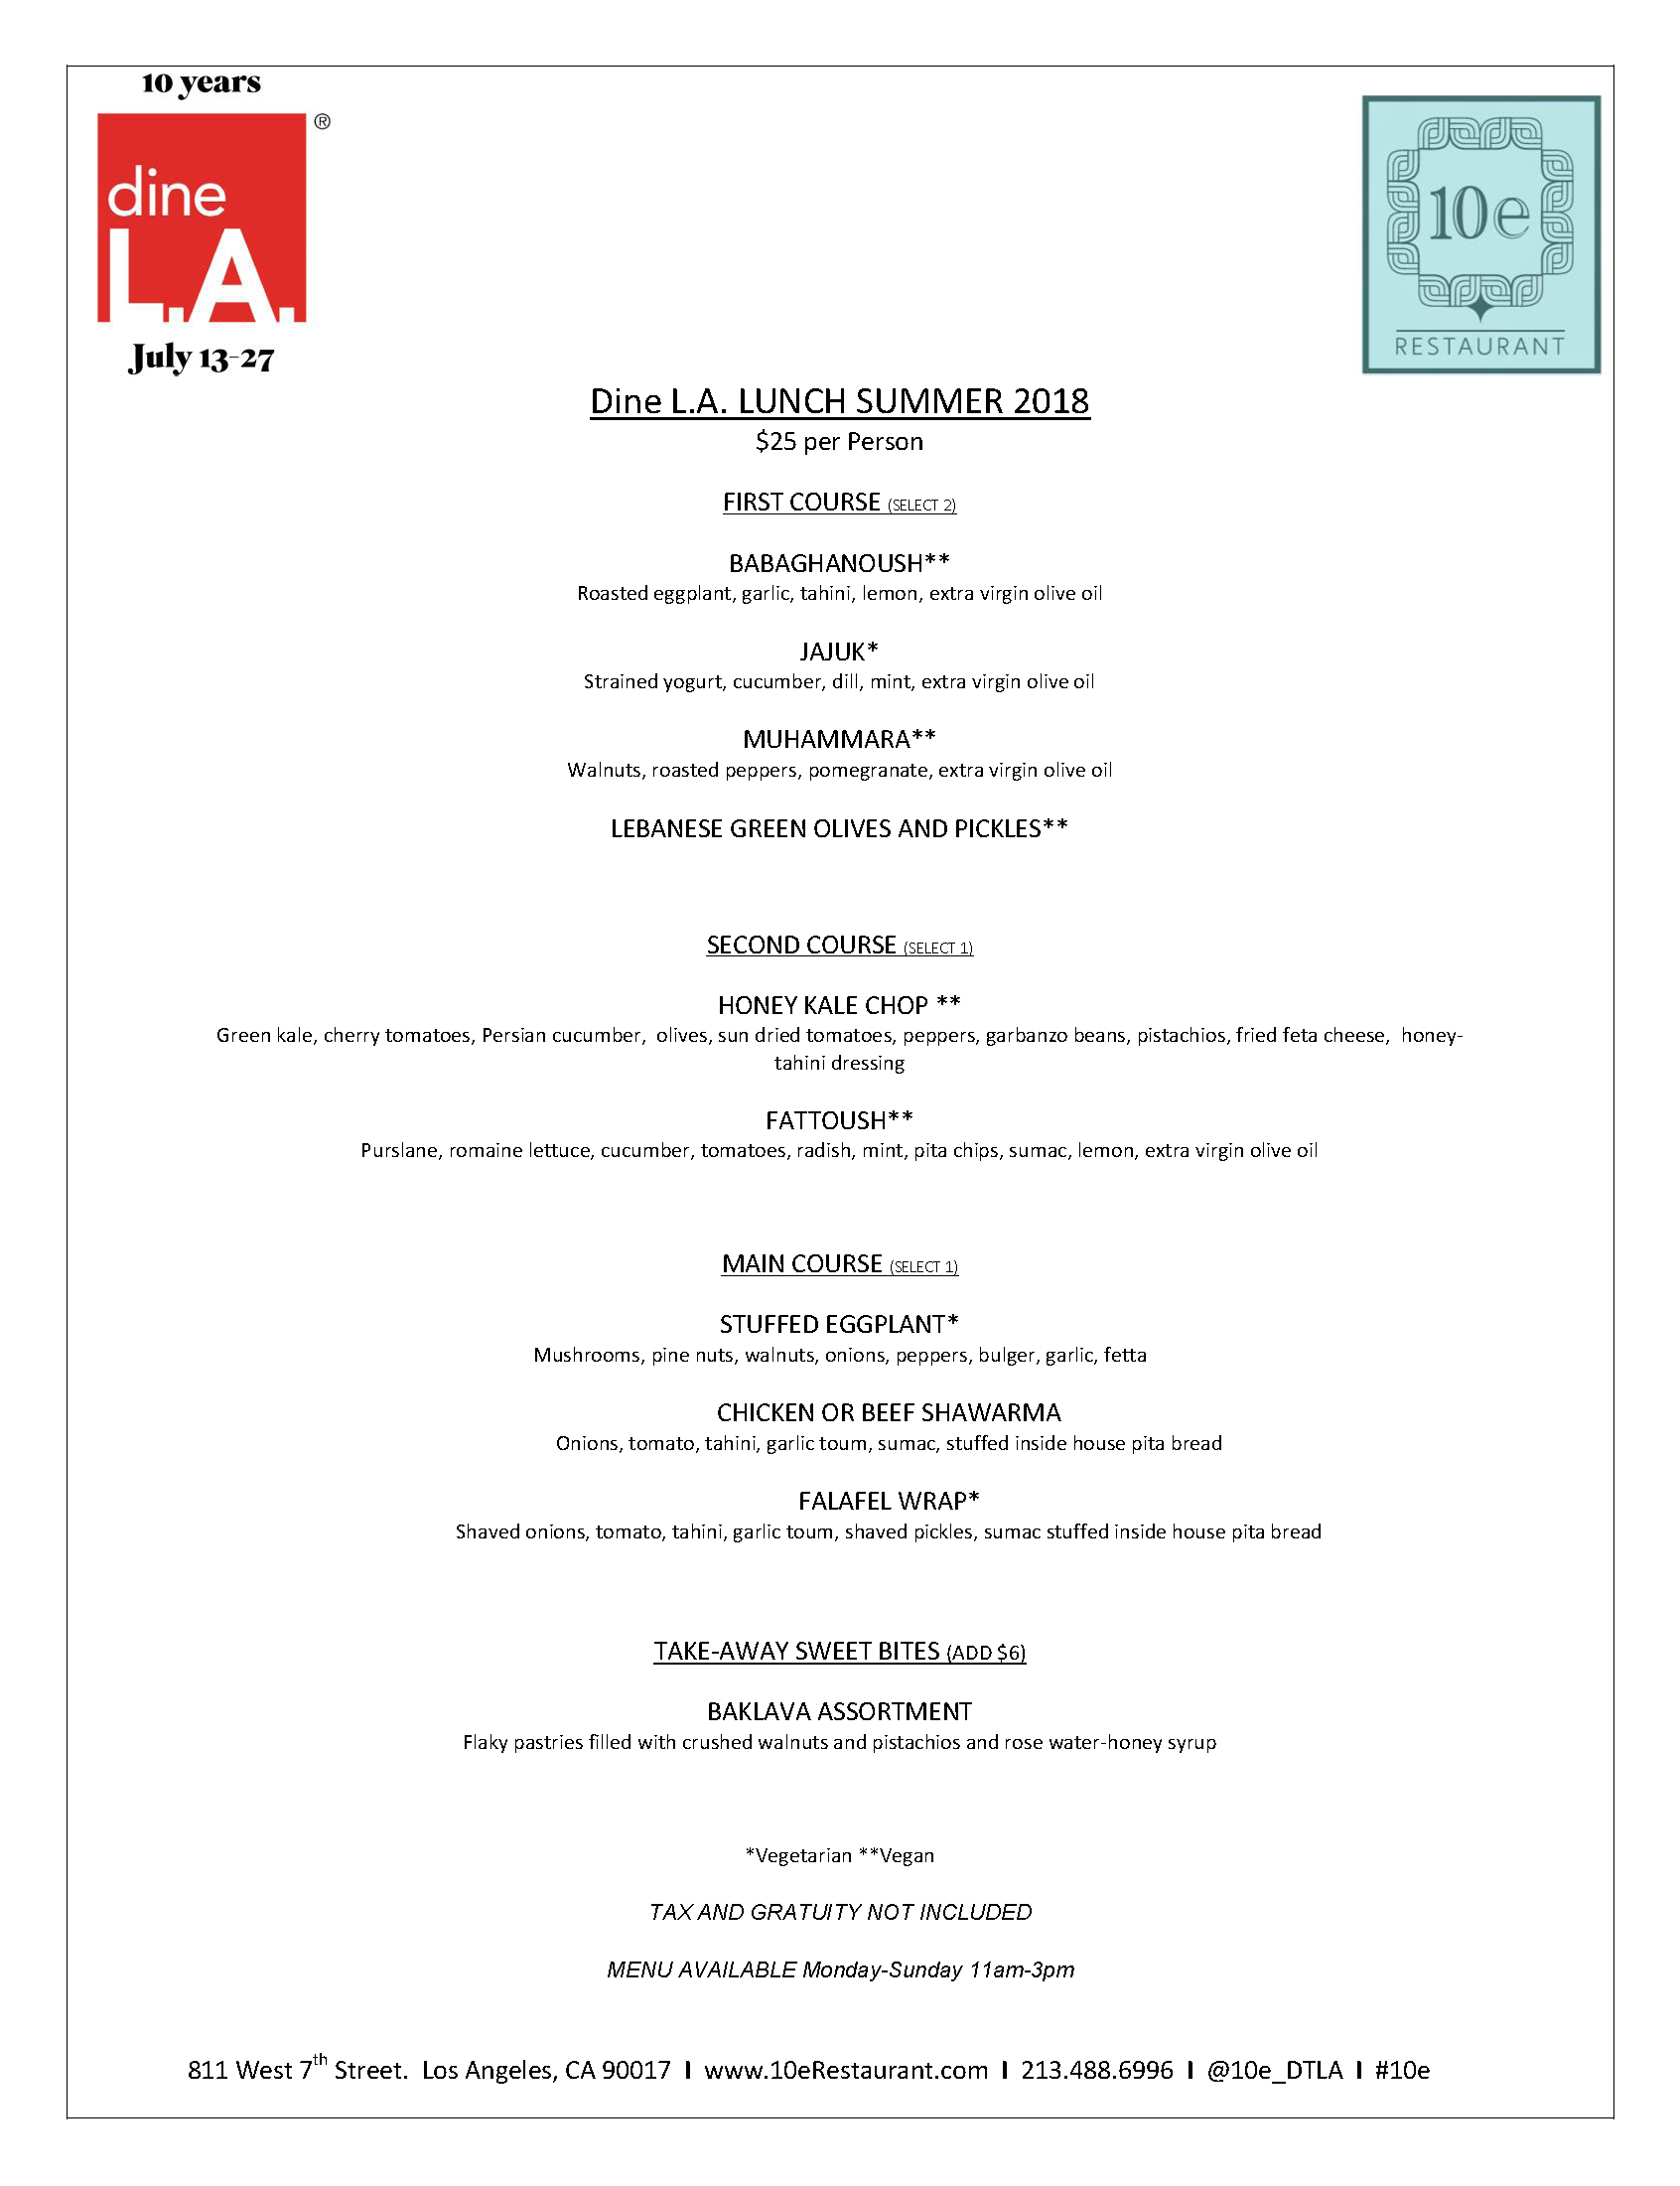 DINE LA LUNCH SPECIALS SUMMER 2018.png